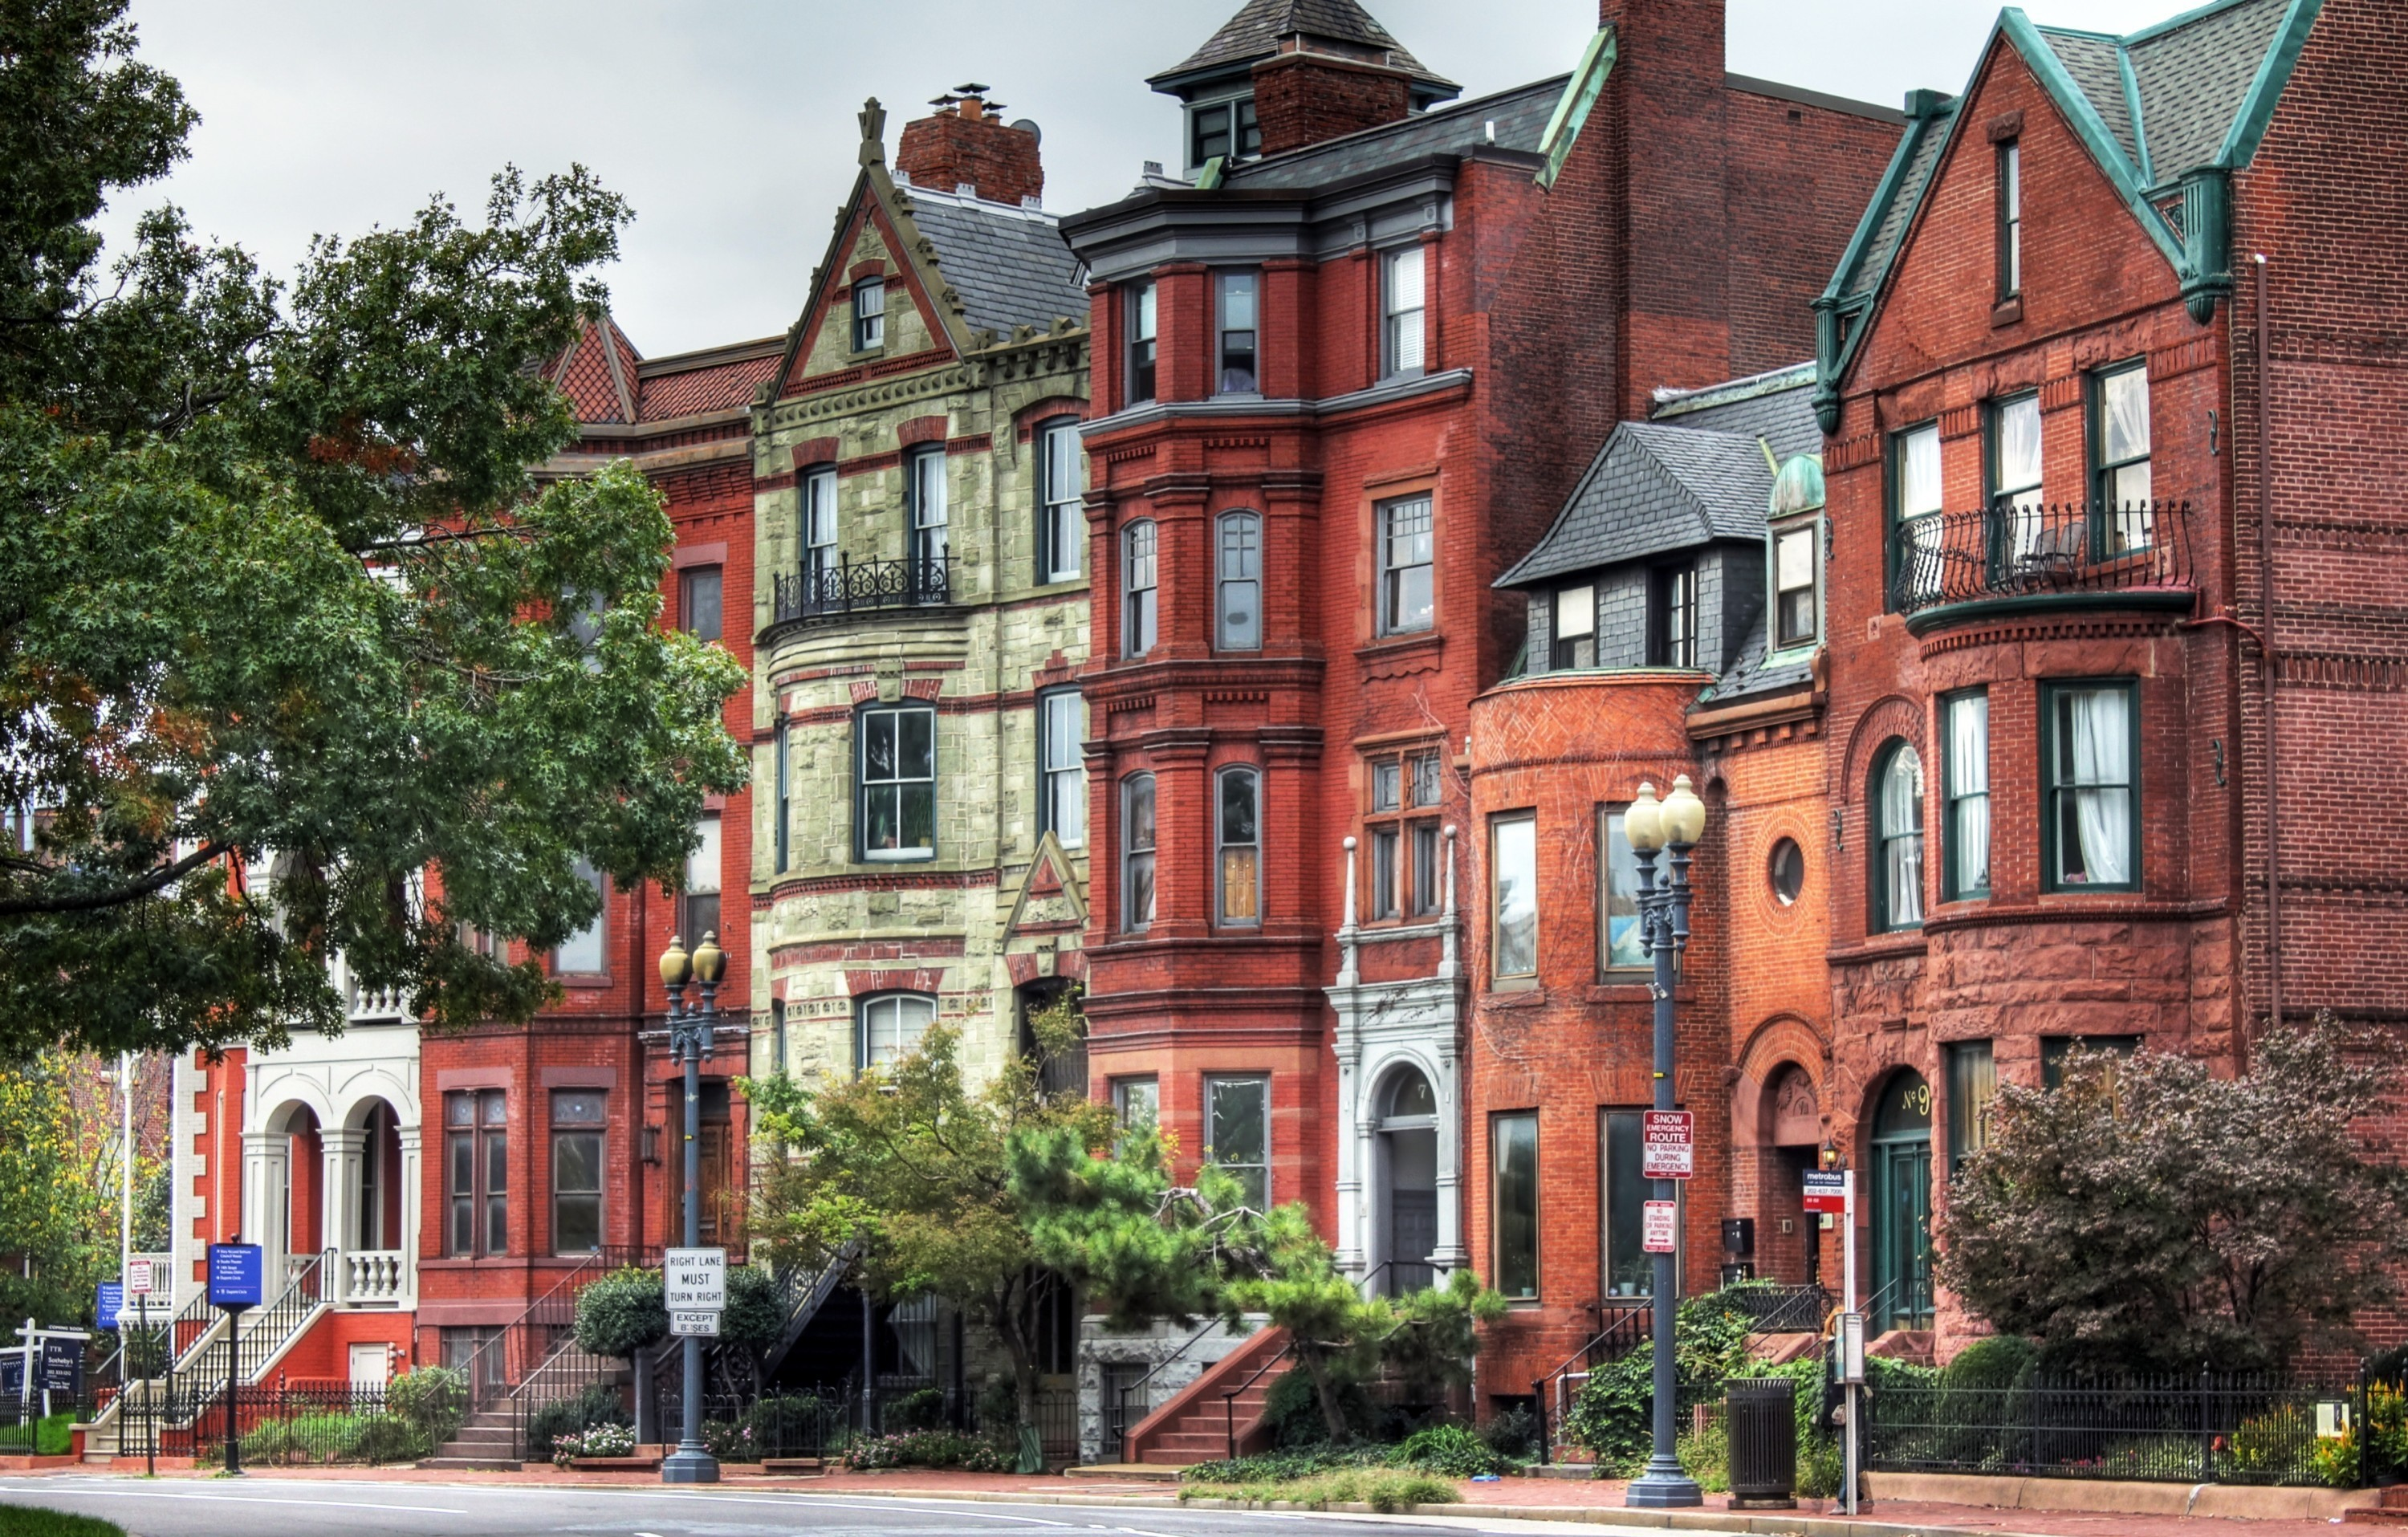 brownstones in washington, d.c. hd wallpaper | background image